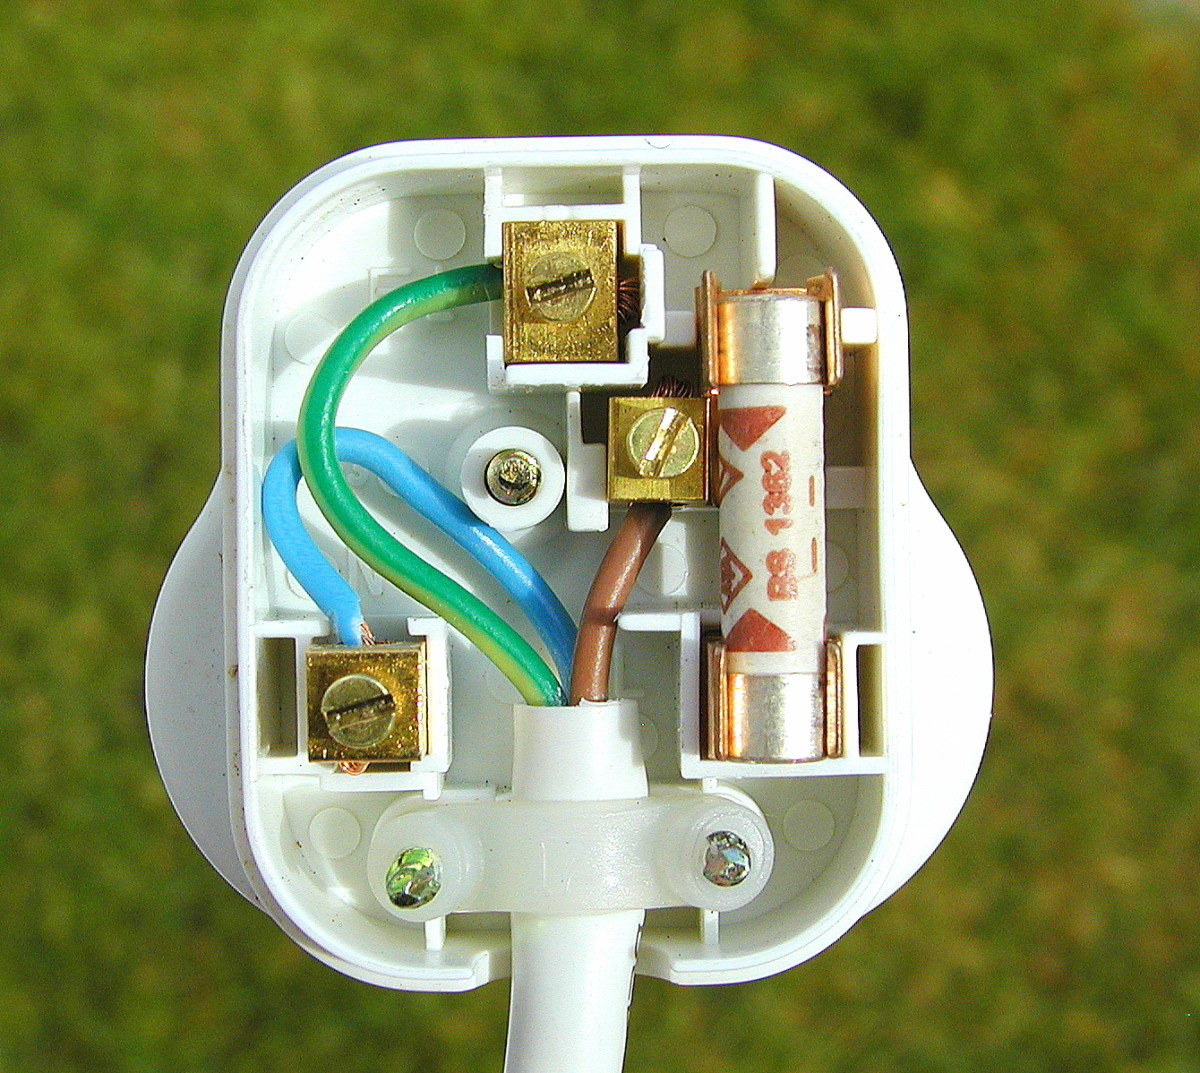 hight resolution of 9 easy steps to wiring a plug correctly and safely